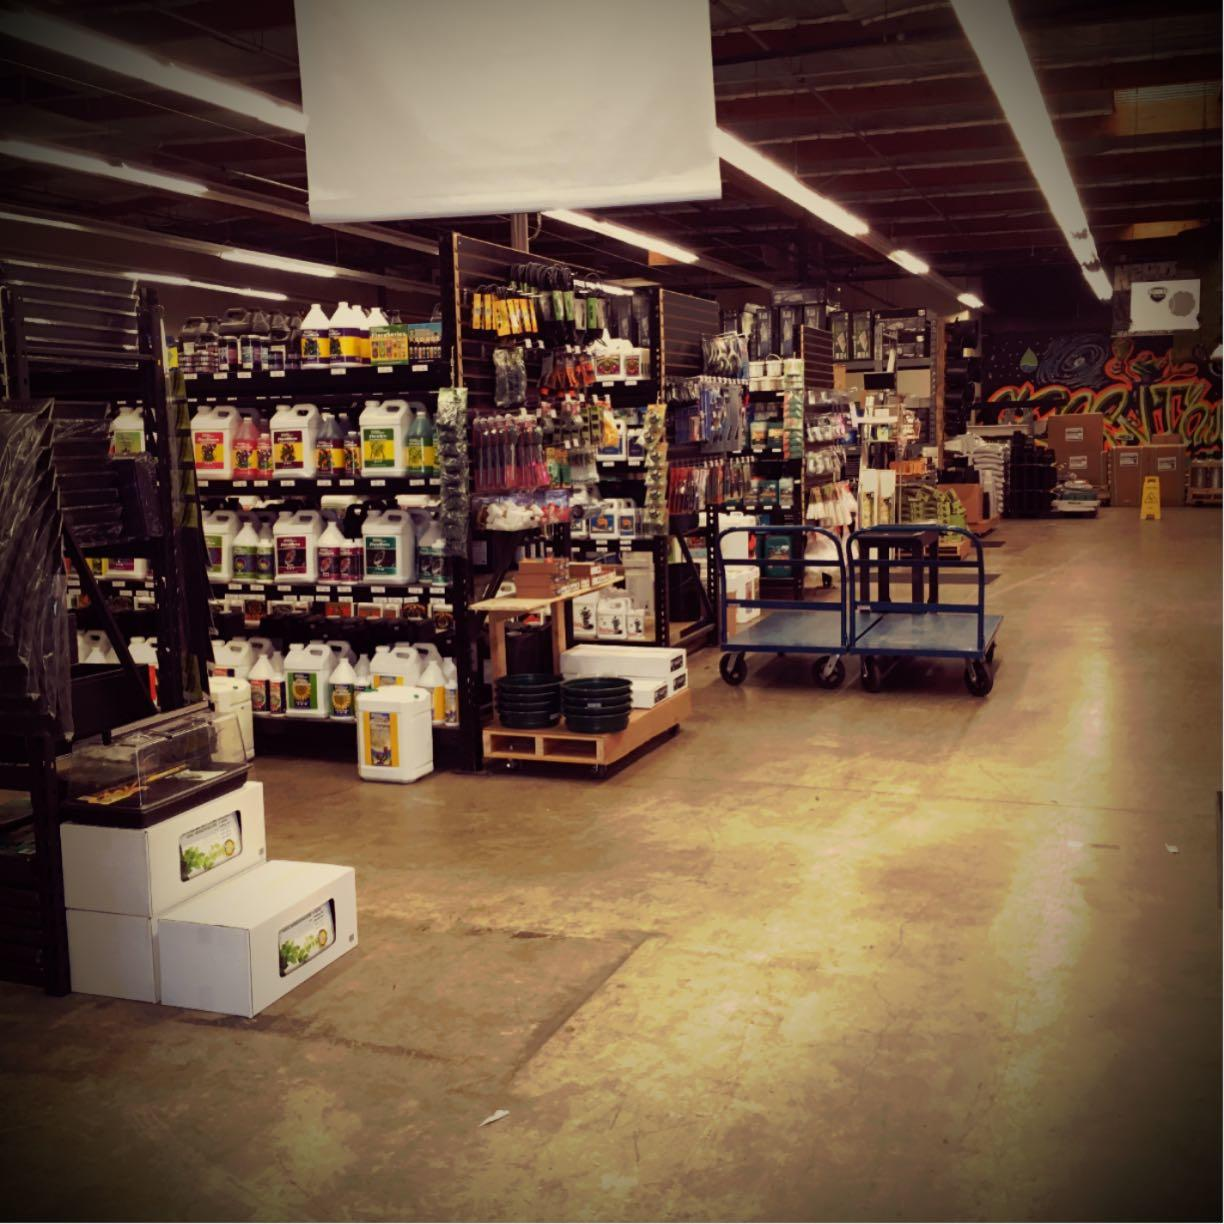 Grower Supply House image 55